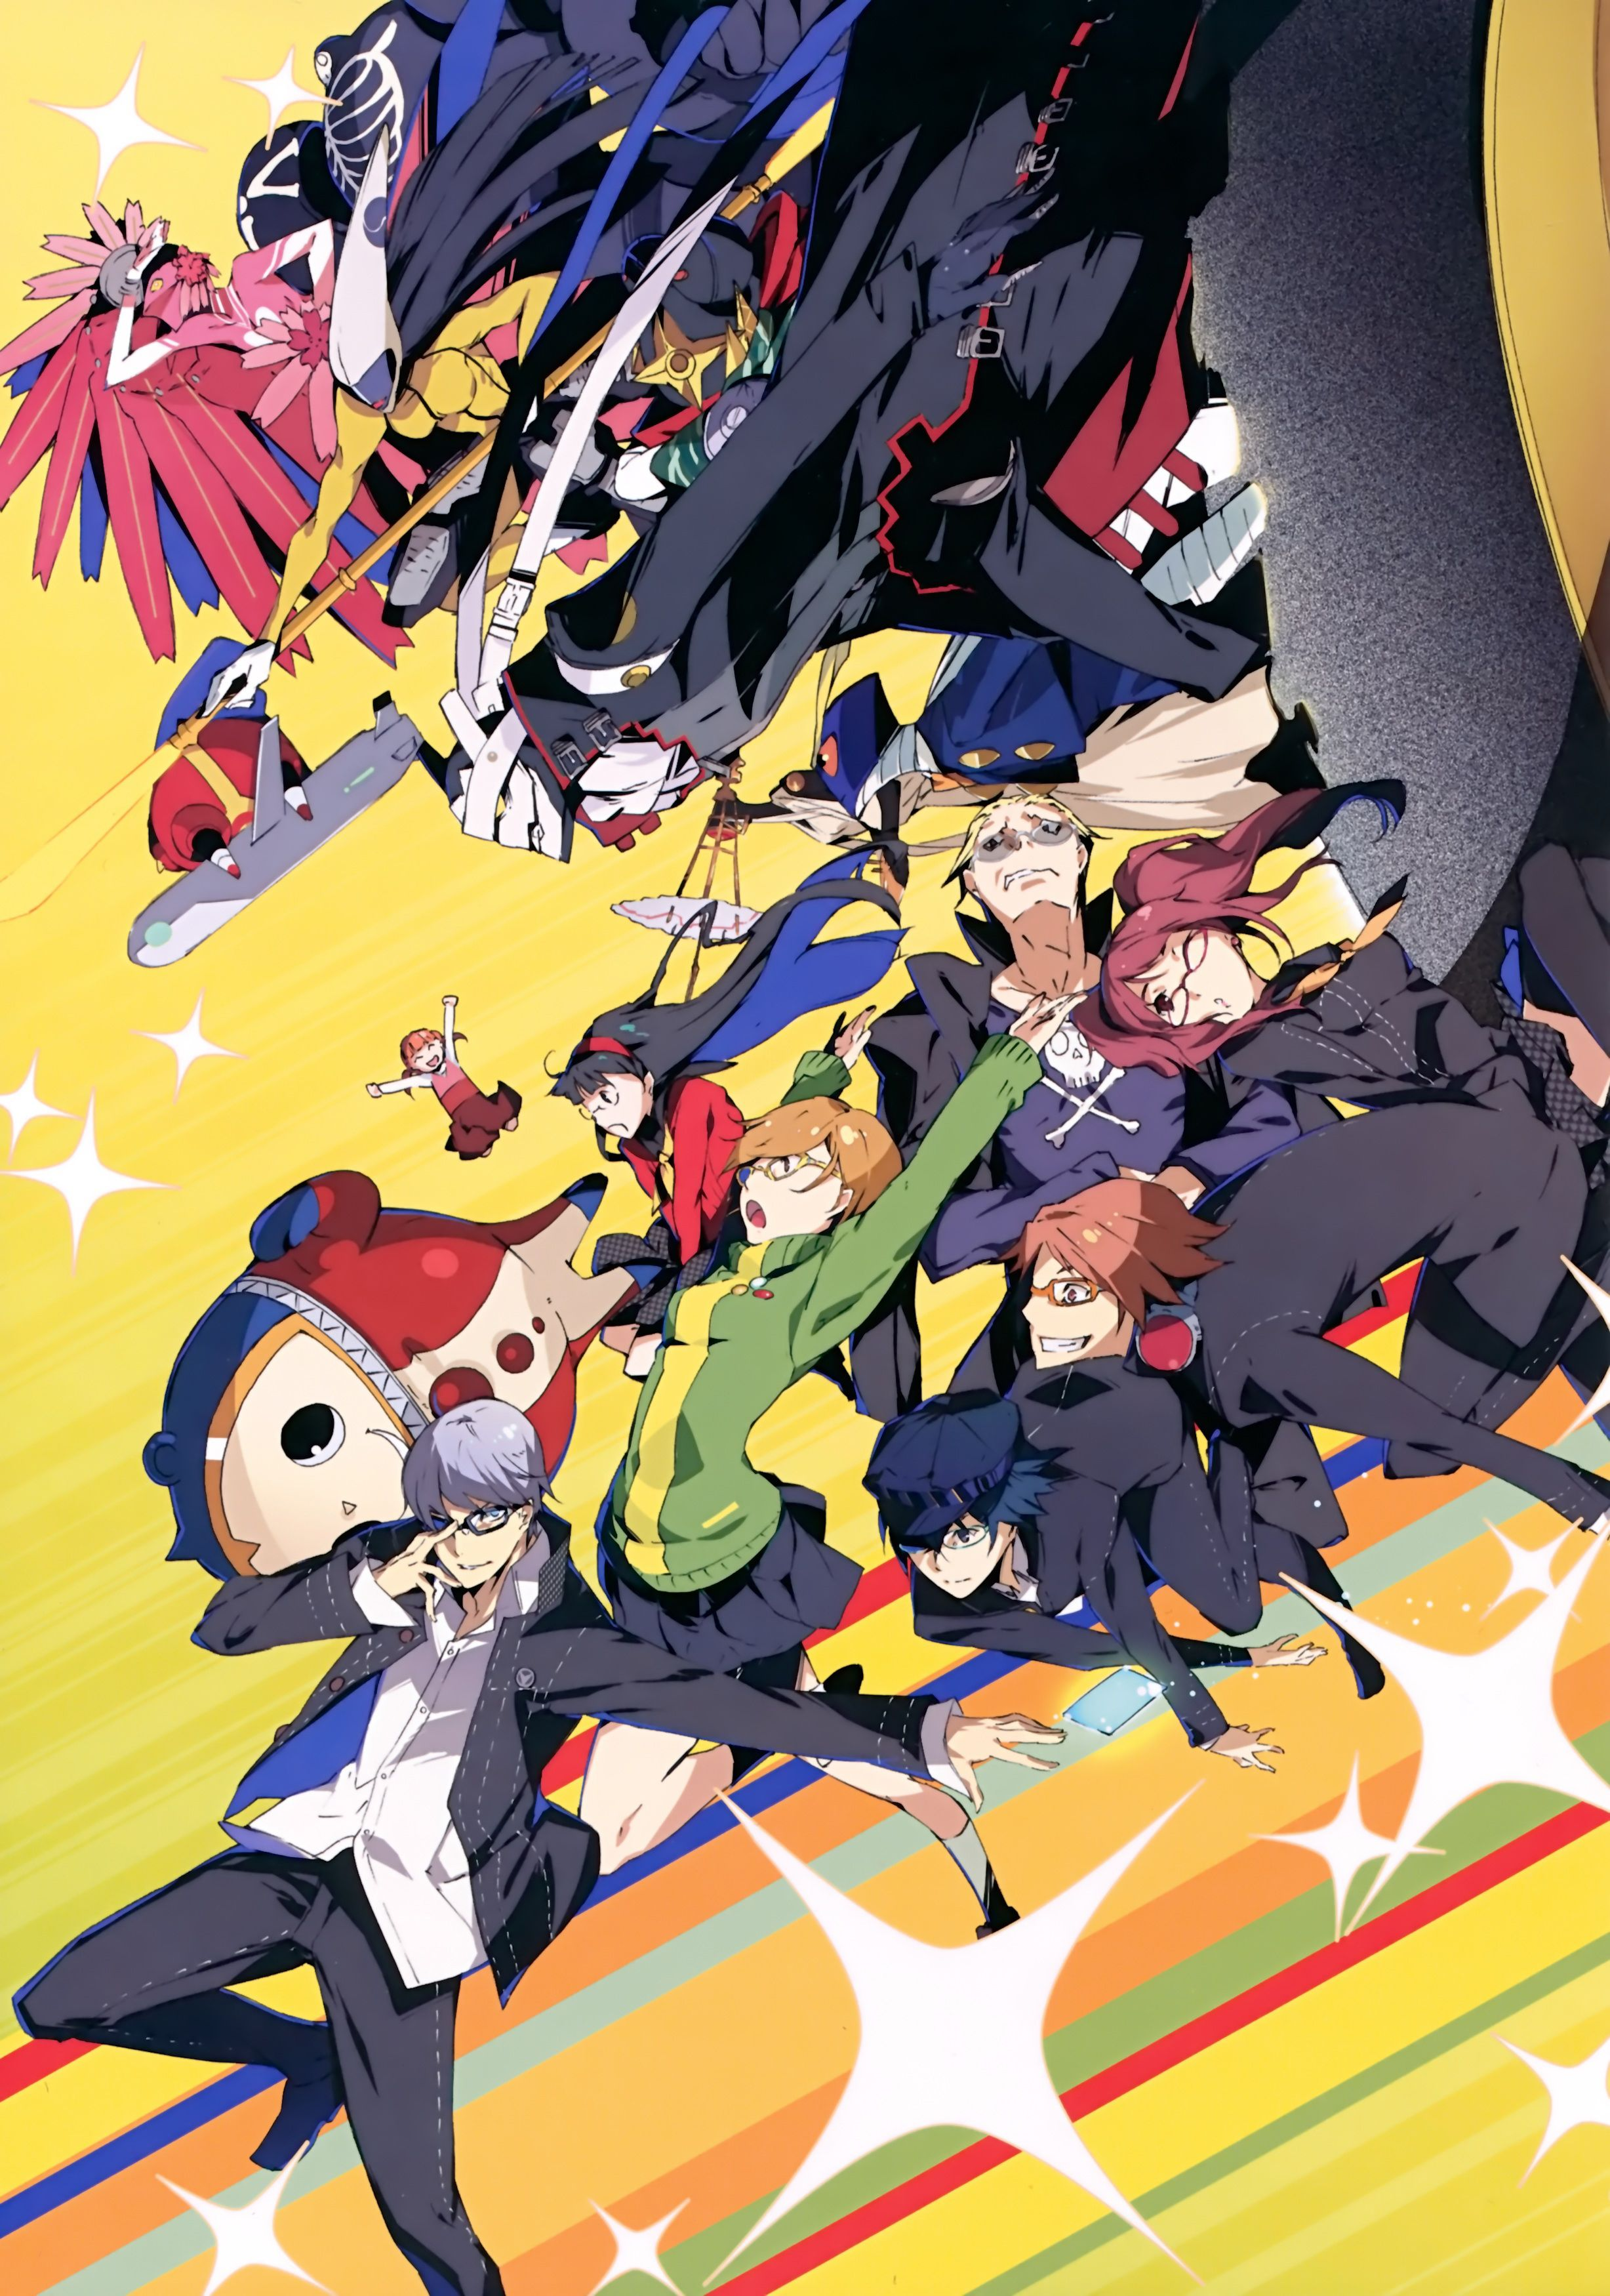 Pin On Persona 4 Golden